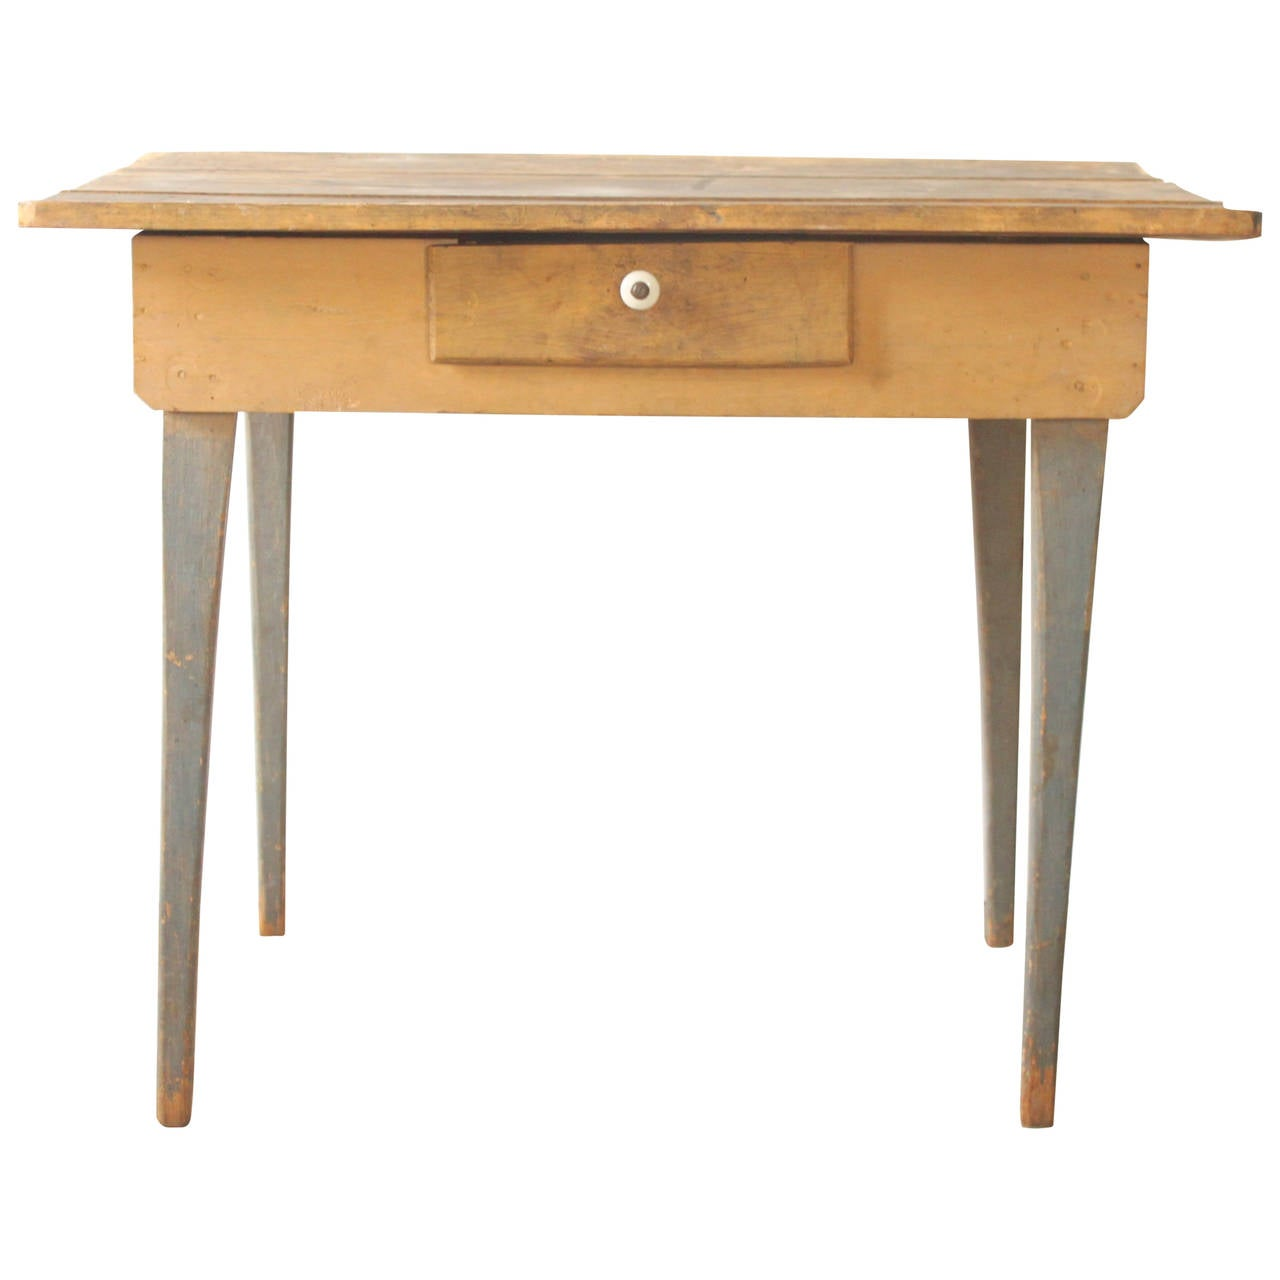 Wooden Desk At 1stdibs. Full resolution‎  portrait, nominally Width 1280 Height 1280 pixels, portrait with #986934.